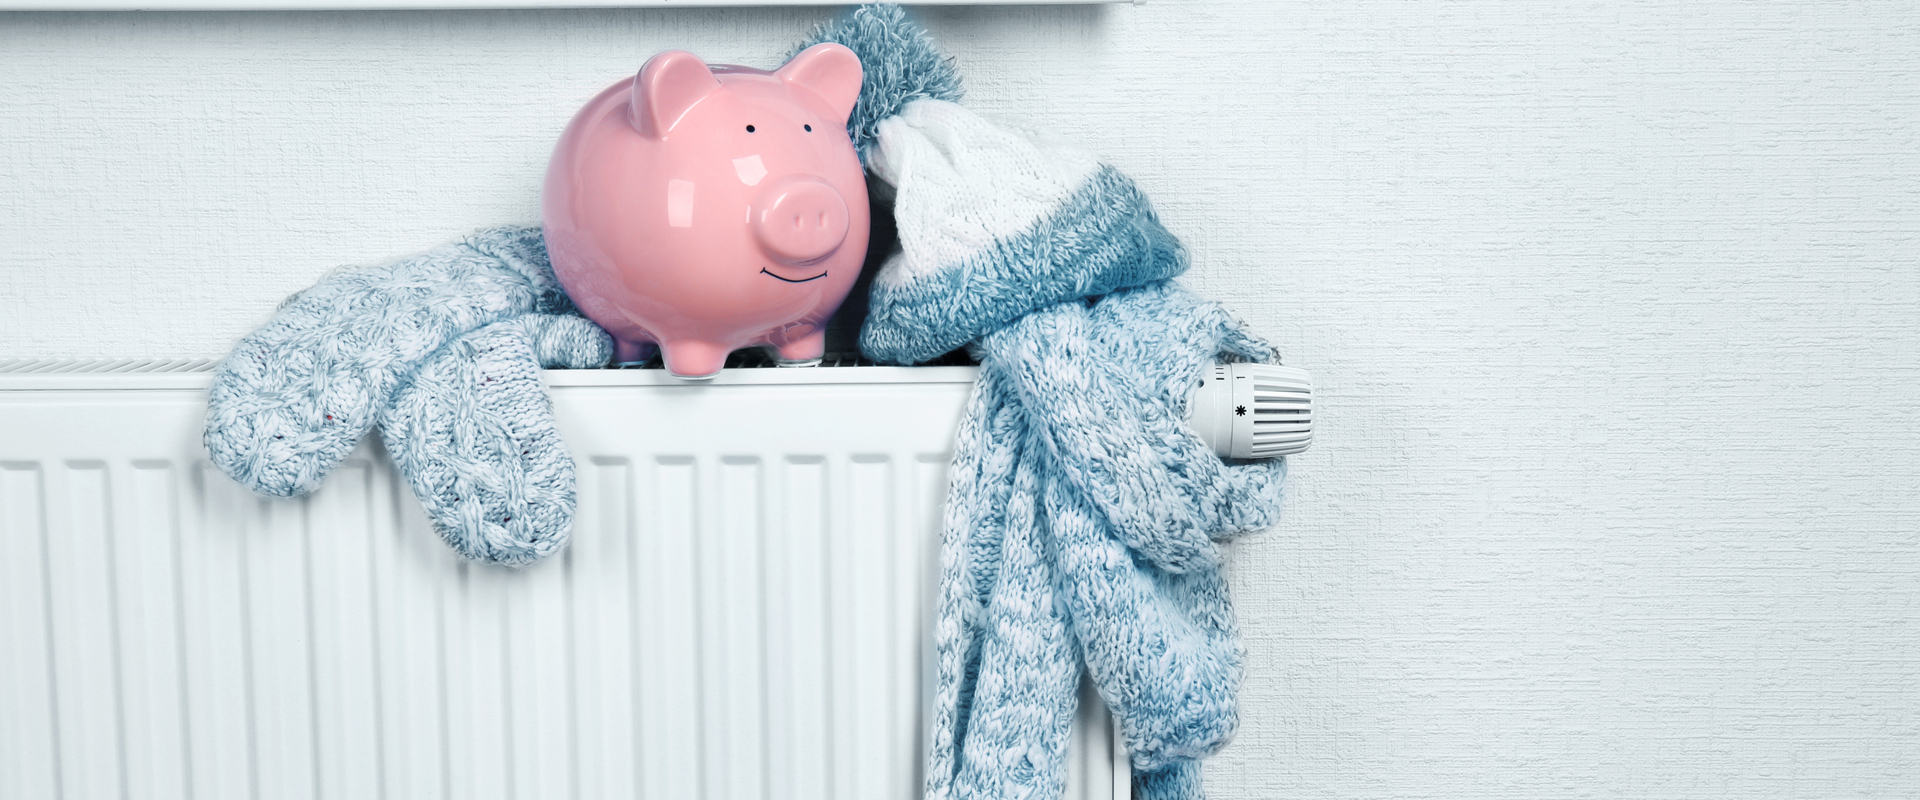 Boiler Protection Tips for the Winter Season